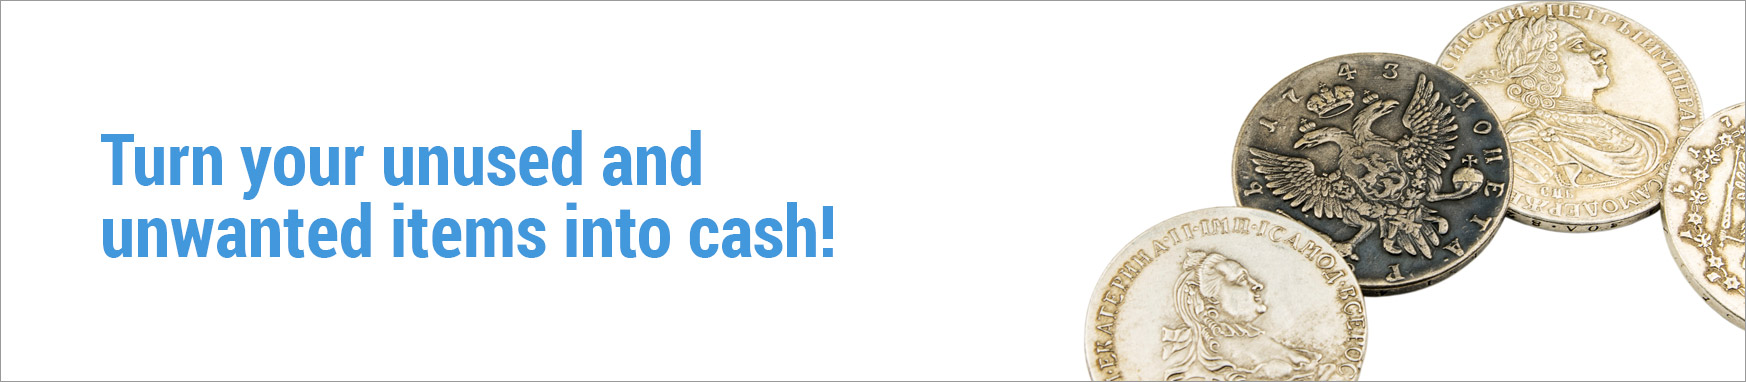 Turn your unwanted and unused items into cash.